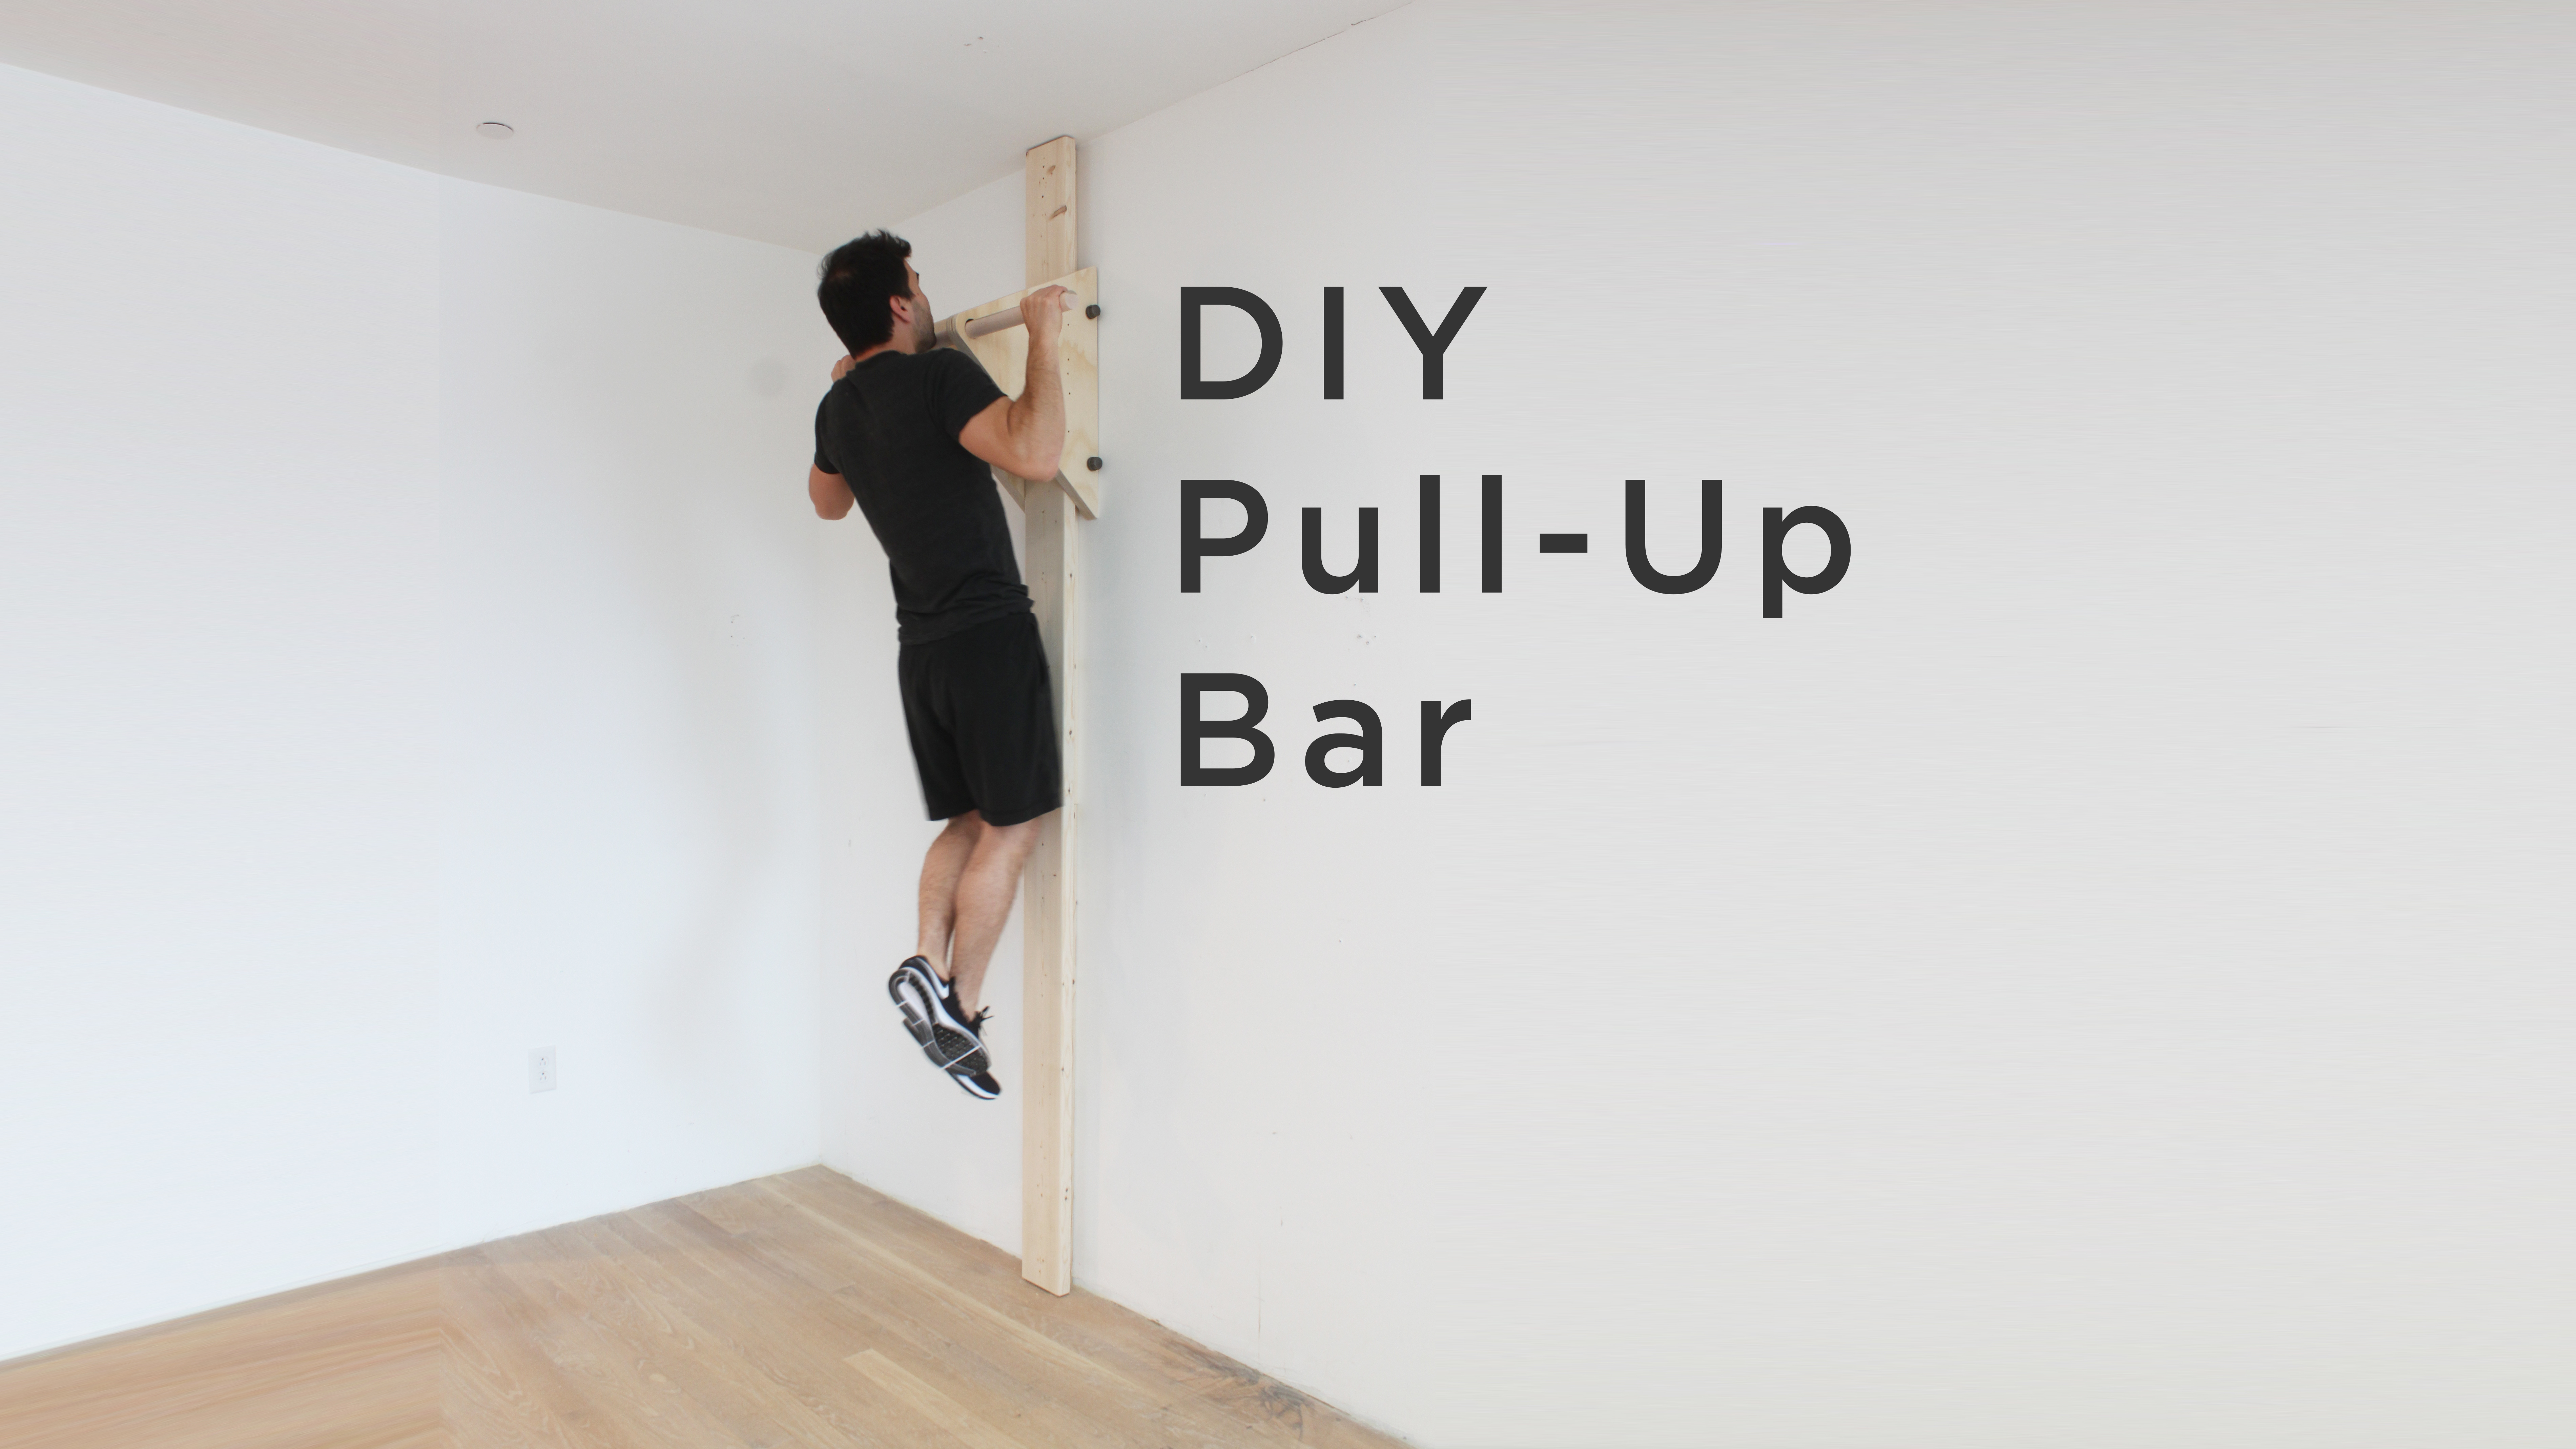 diy pull up bar - ryobi nation projects